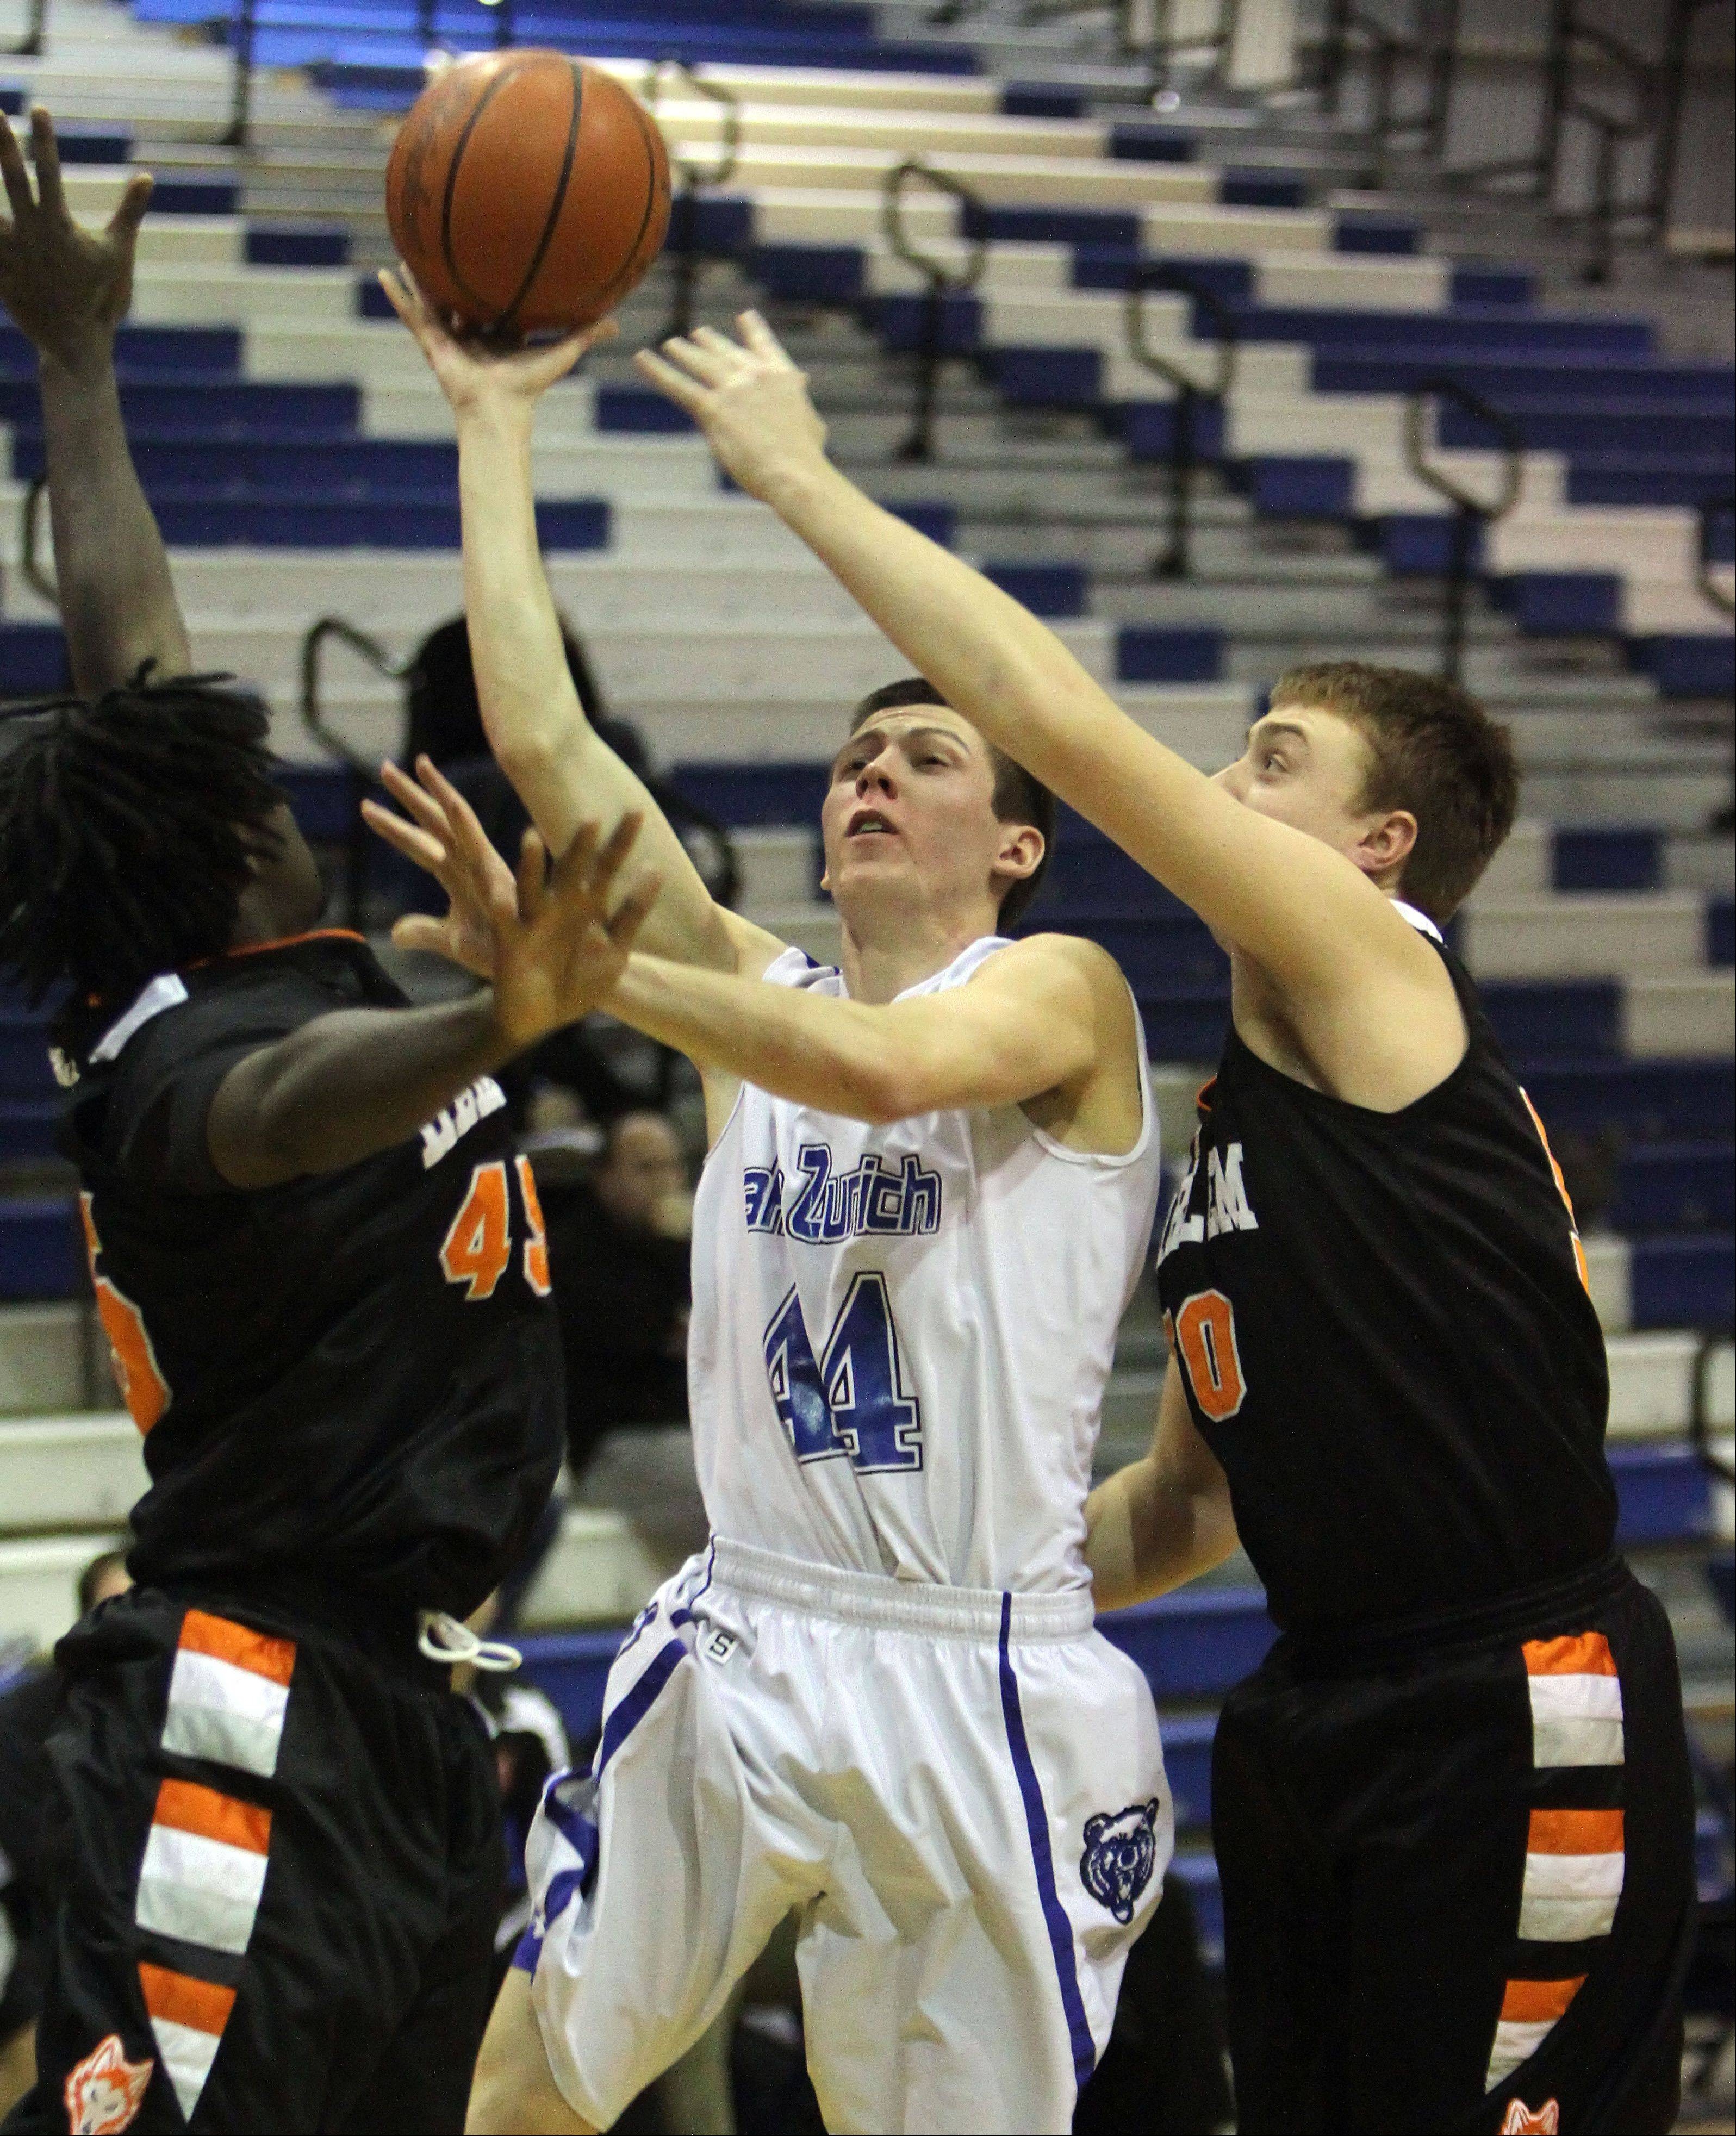 Lake Zurich�s Ryan Roach drives on Brent Croft, left, and Harlem on Monday night at Lake Zurich.